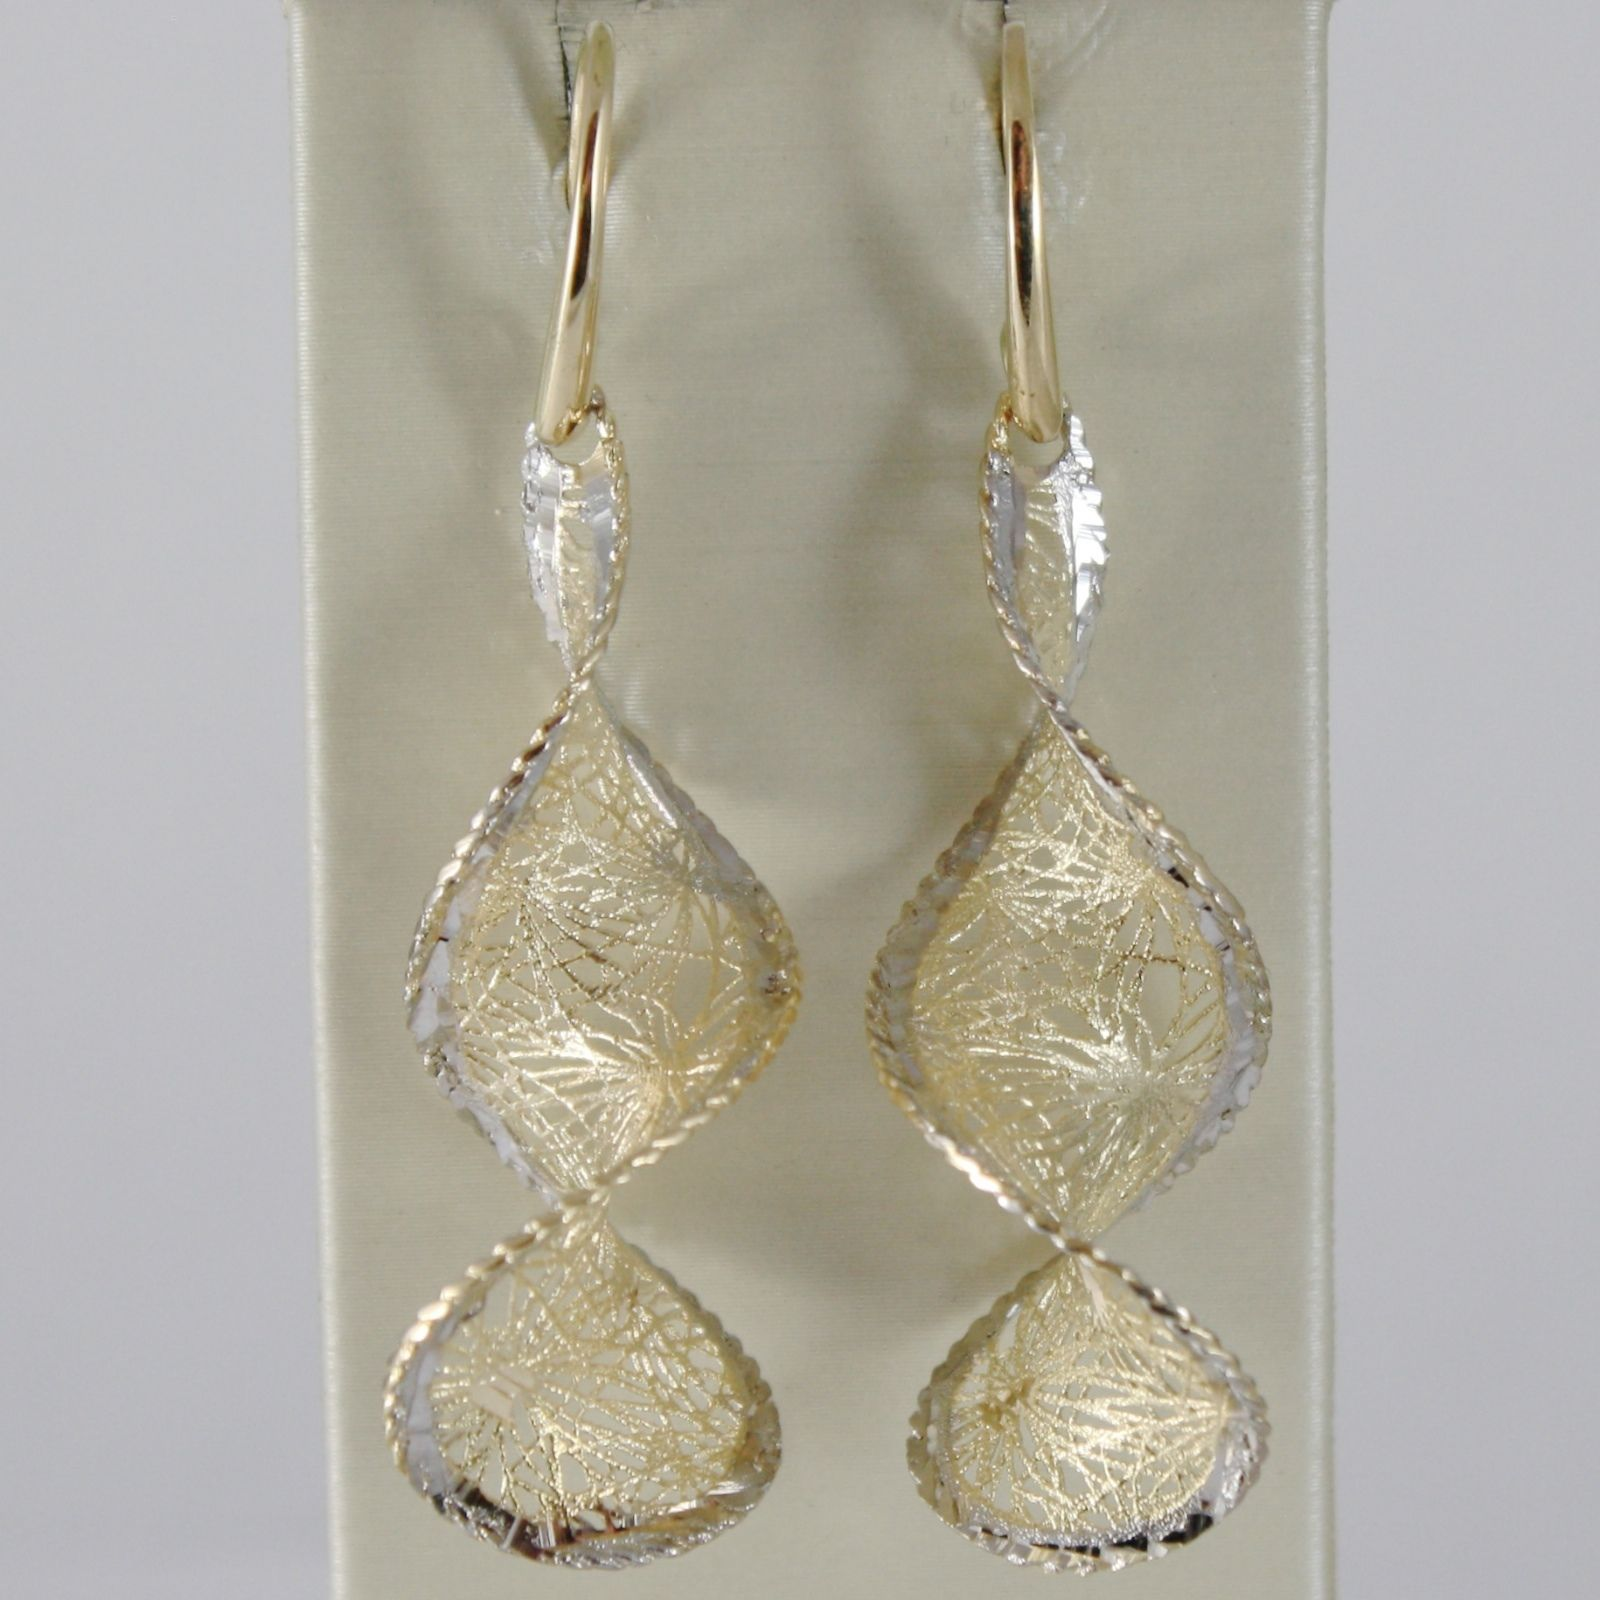 18K YELLOW WHITE GOLD PENDANT EARRINGS FINELY WORKED TWISTED SPIRAL MADE ITALY